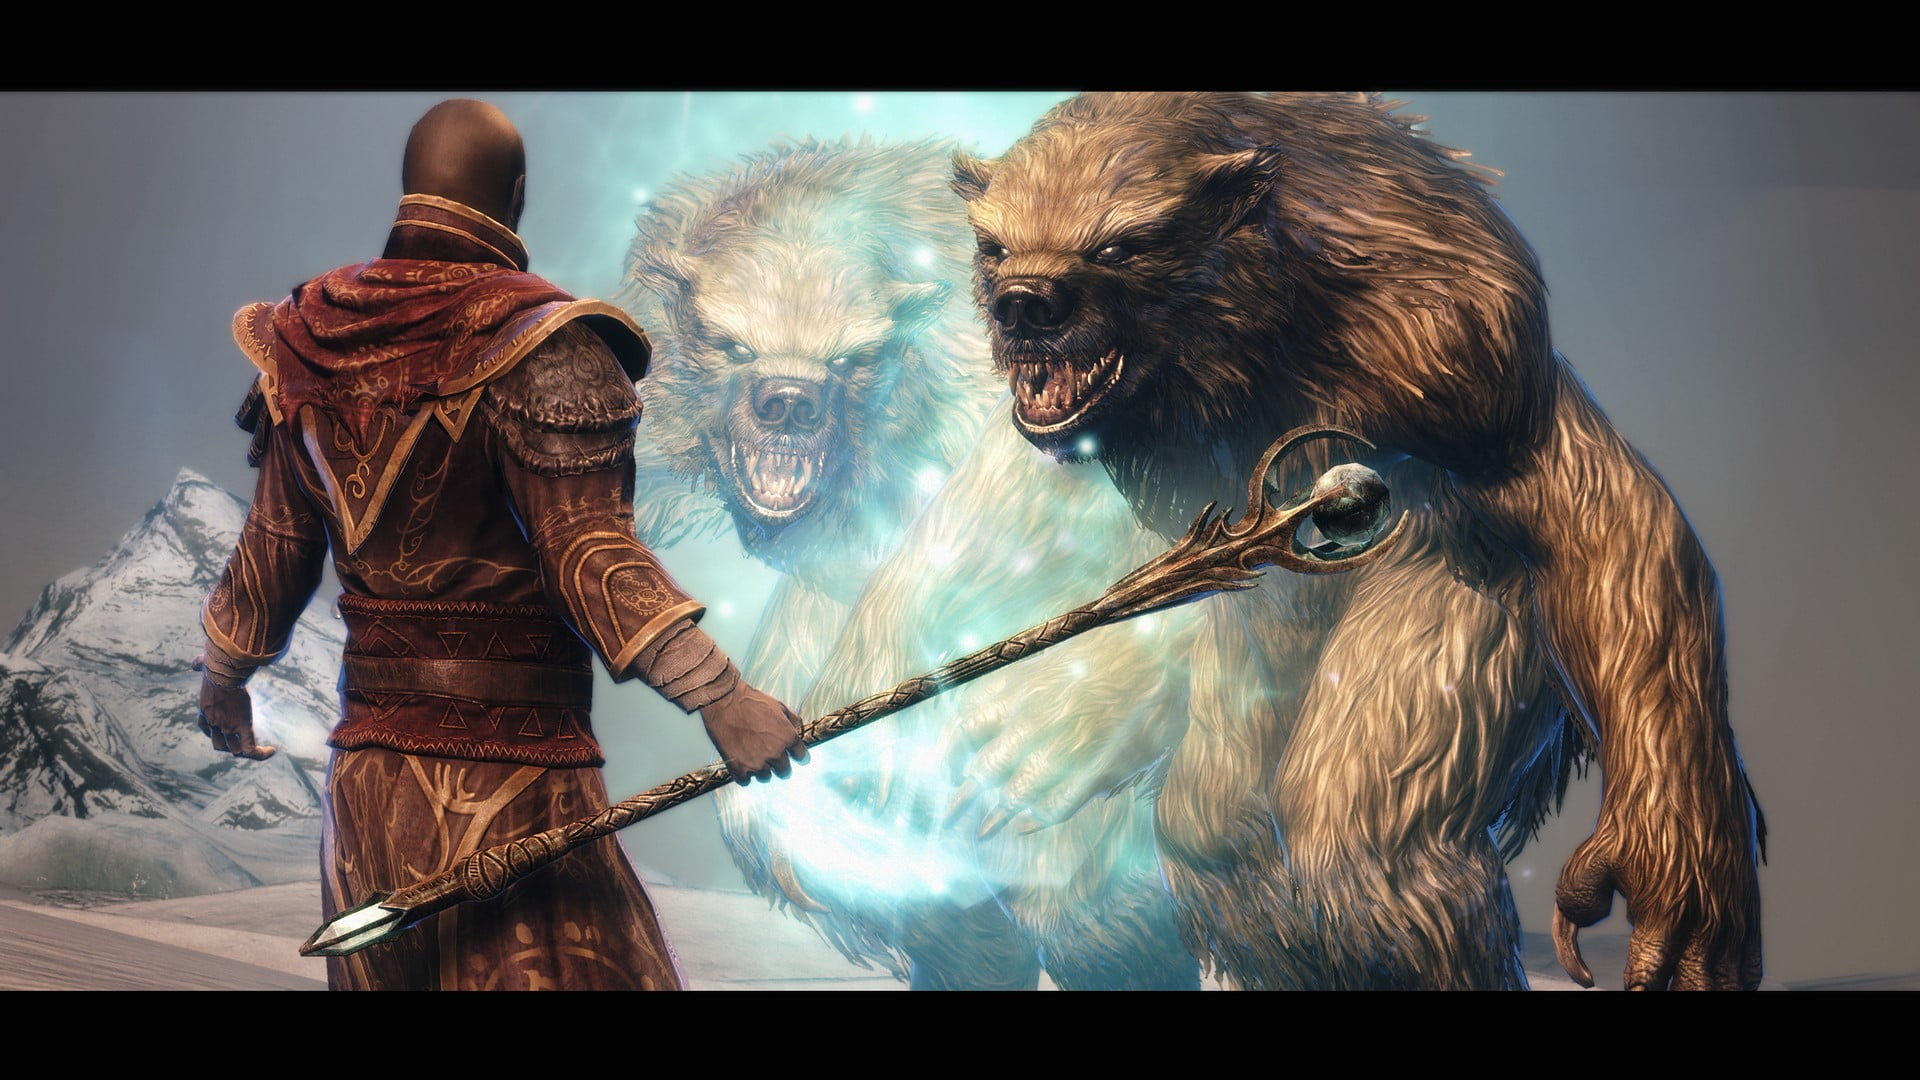 Mage and beast wallpaper The Elder Scrolls V Skyrim sorcerer 1920x1080